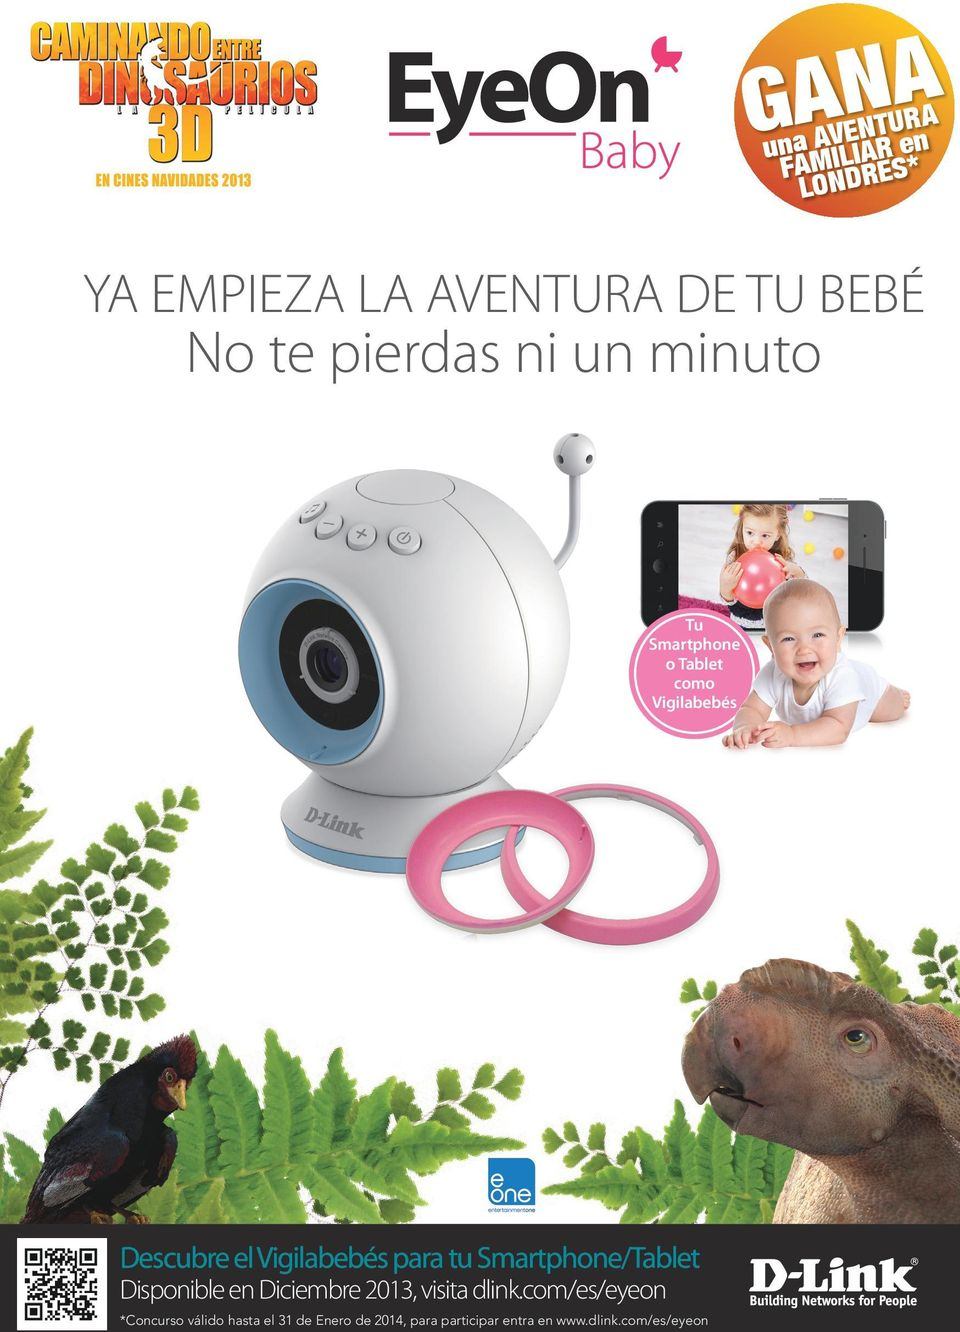 com/es/eyeon competition dlink.com/eyeon Disponible en Diciembrenow: 2013, visita dlink.